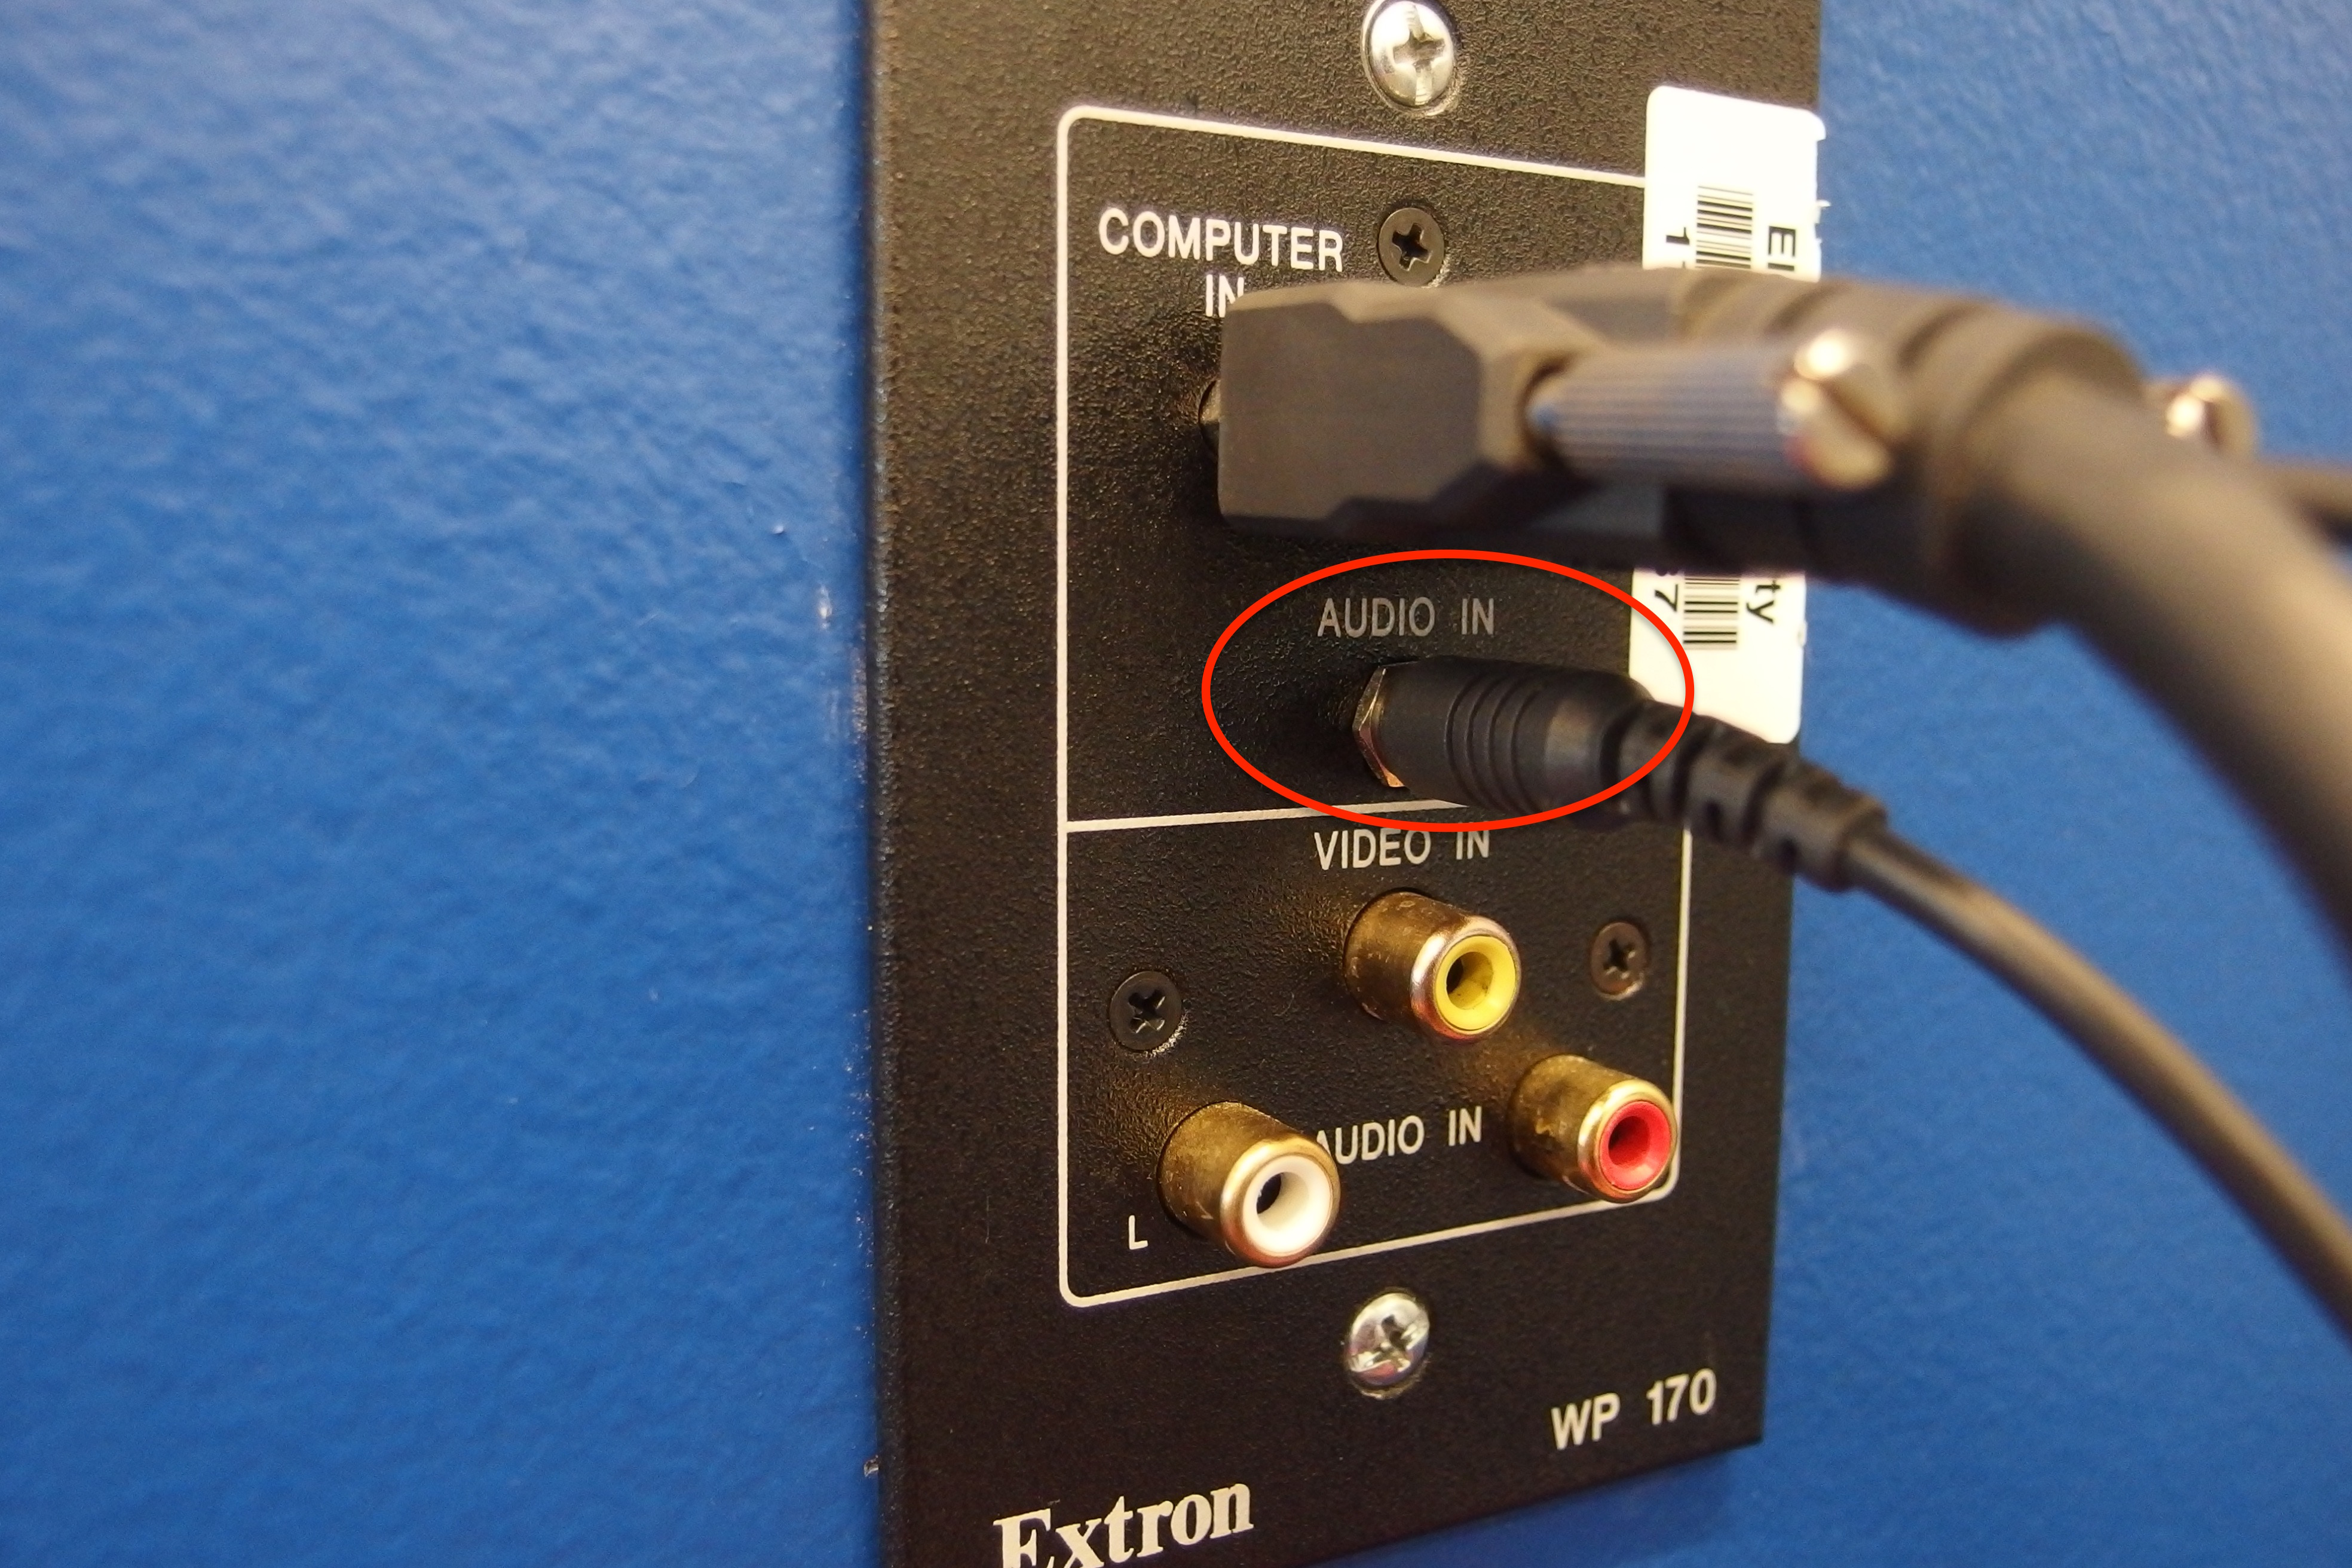 A photo of the 3.5mm cord plugged into the wall plate.